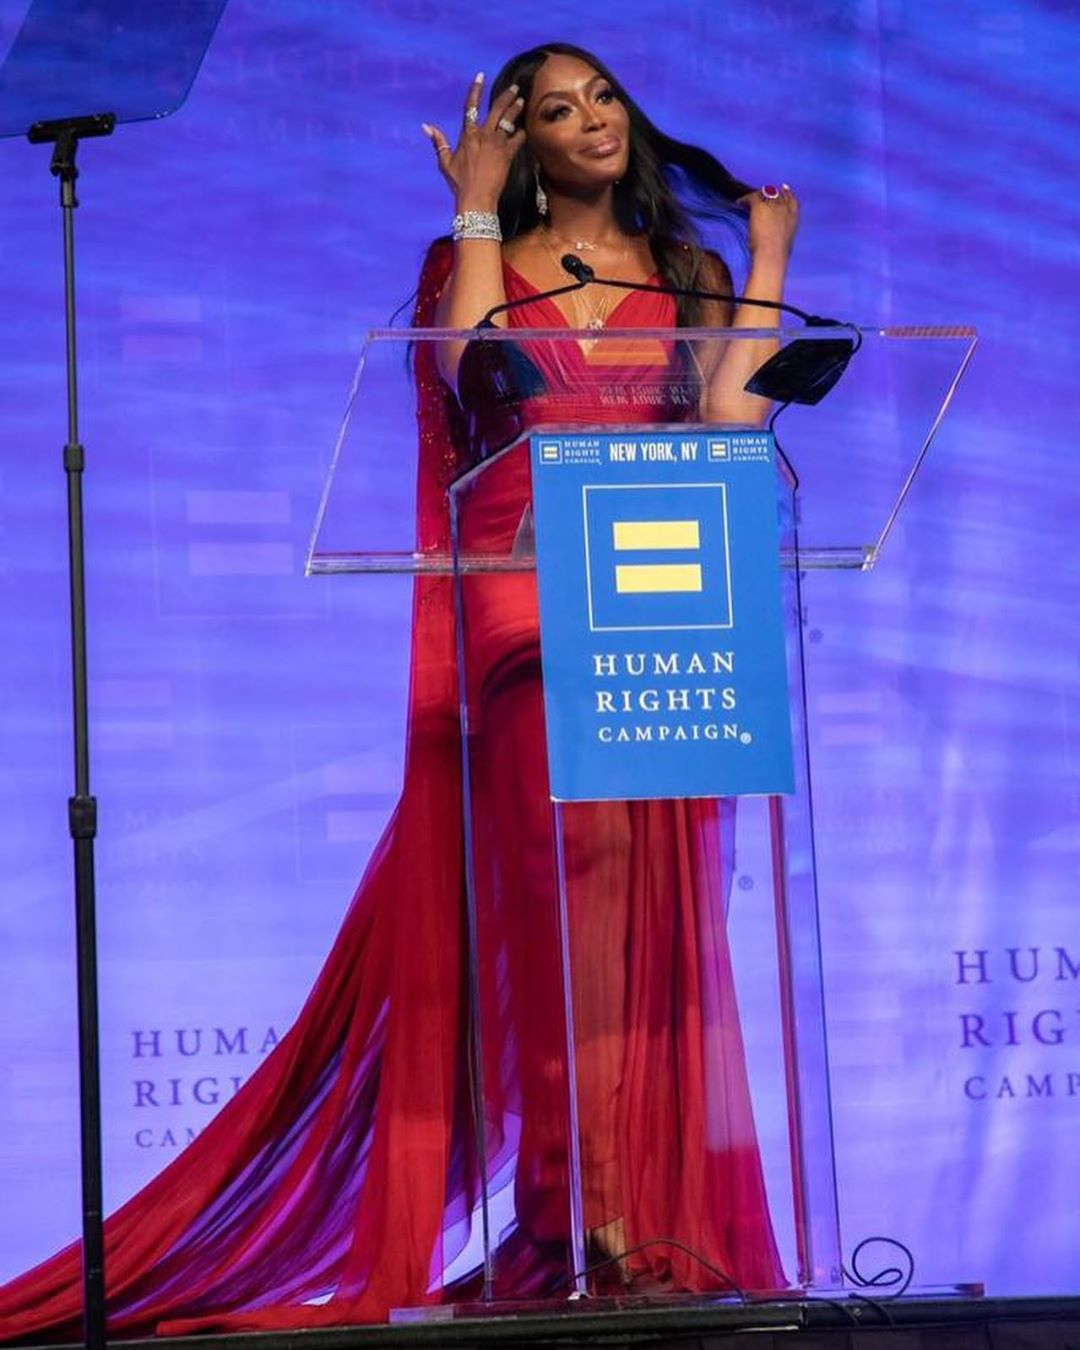 naomi-campbell-2020-global-advocacy-award-new-york-human-rights